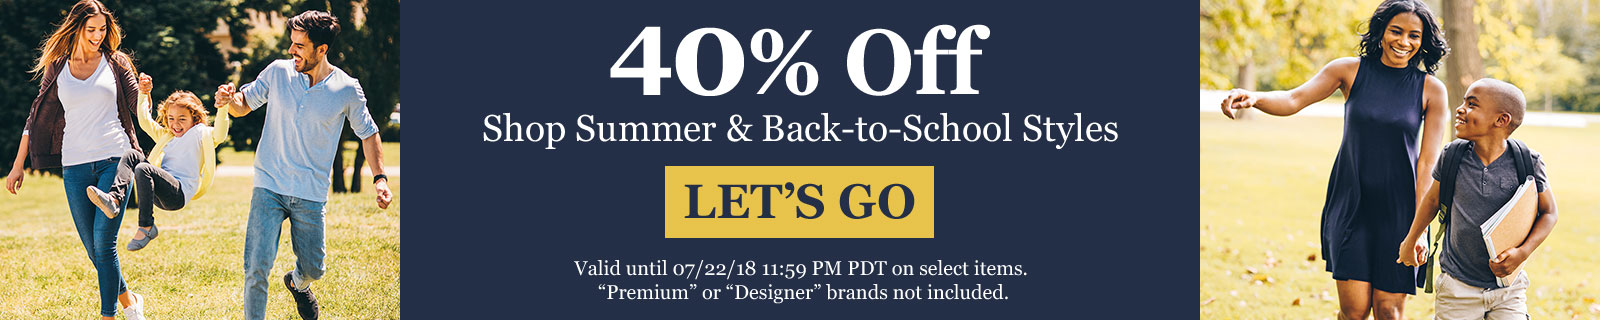 40% Off Shop Summer & Back-to-School Styles LET'S GO